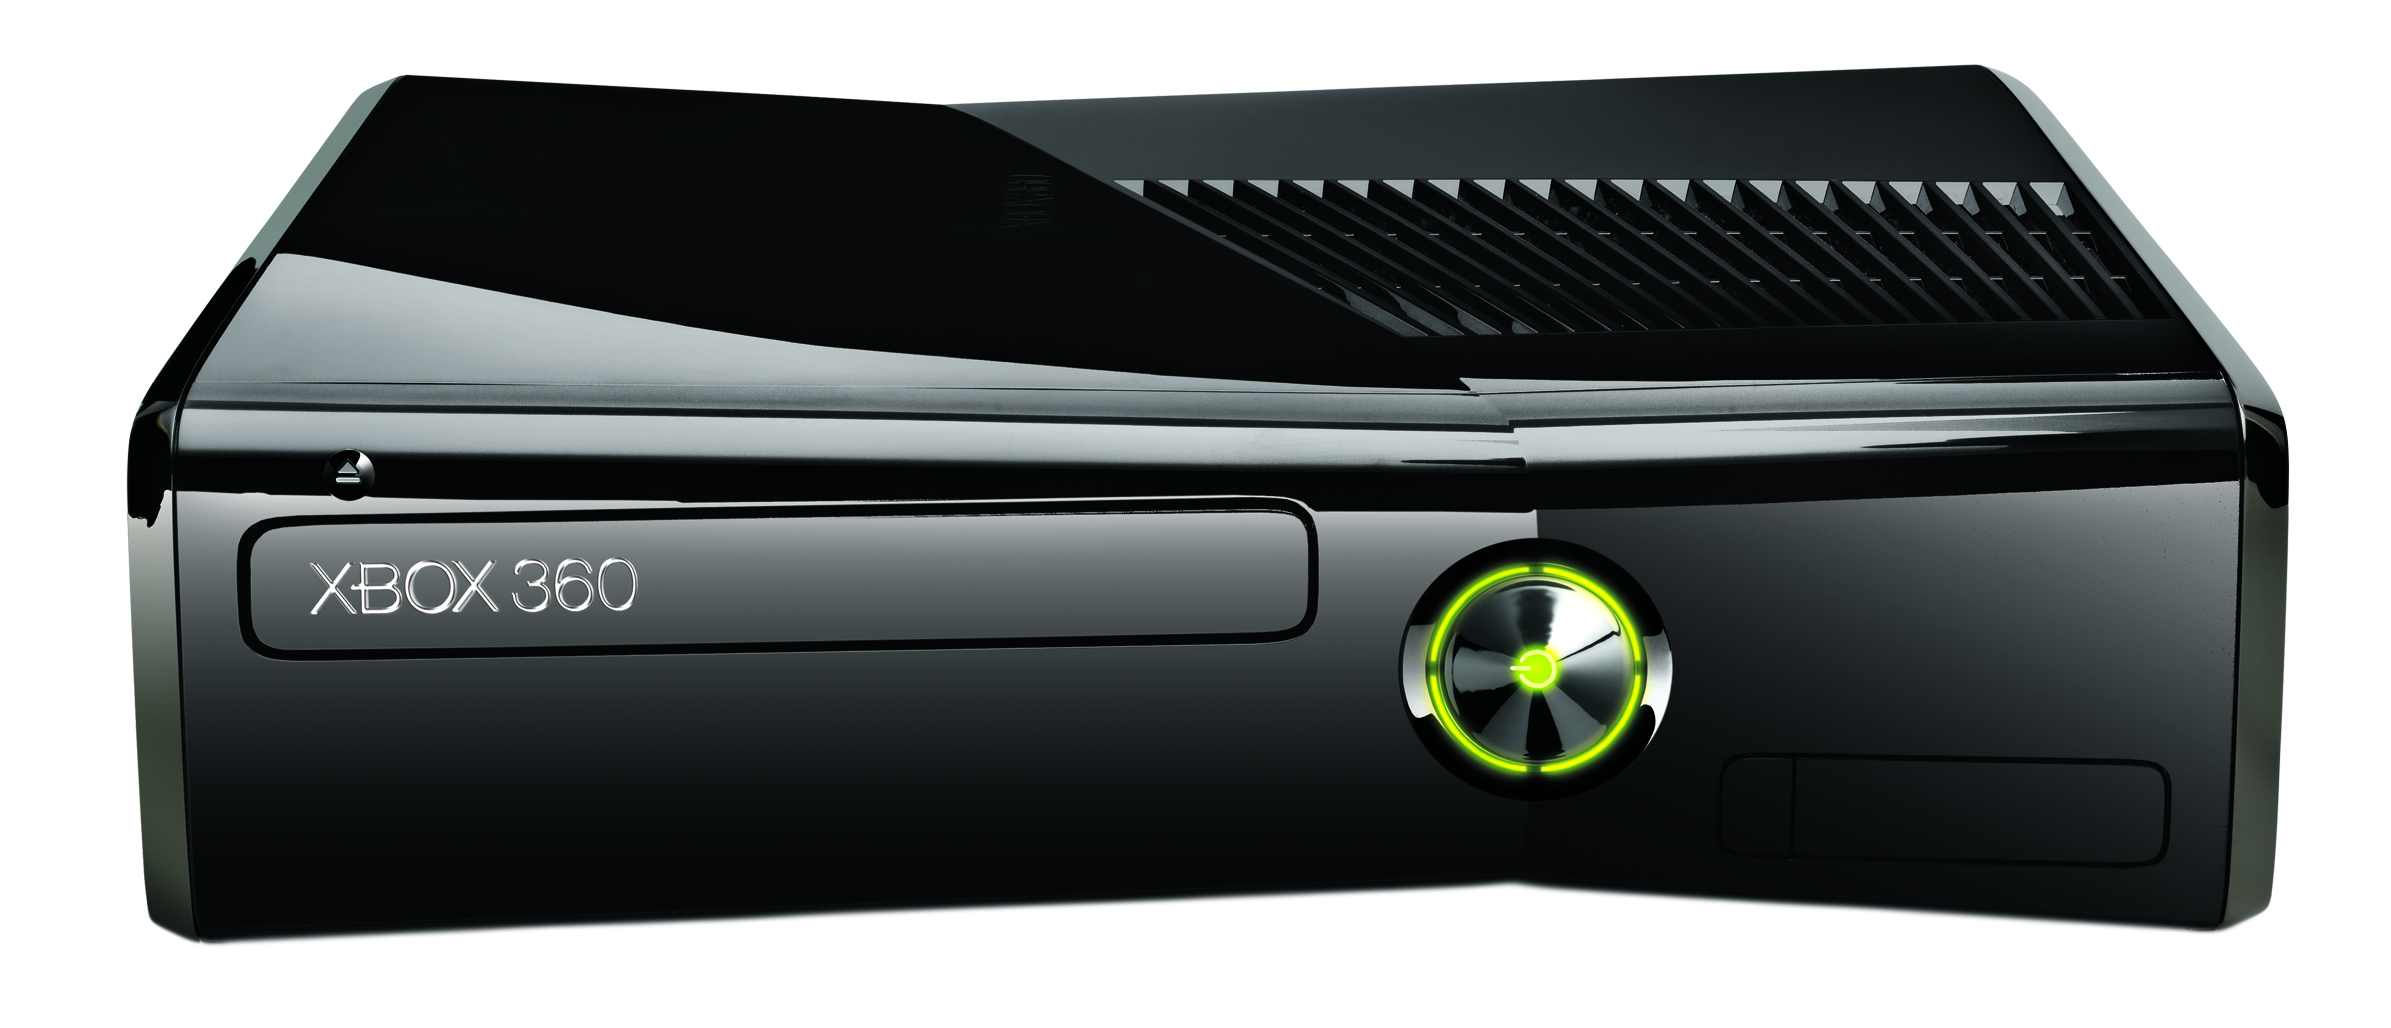 The Xbox 360 does an okay job of video streaming—for a price